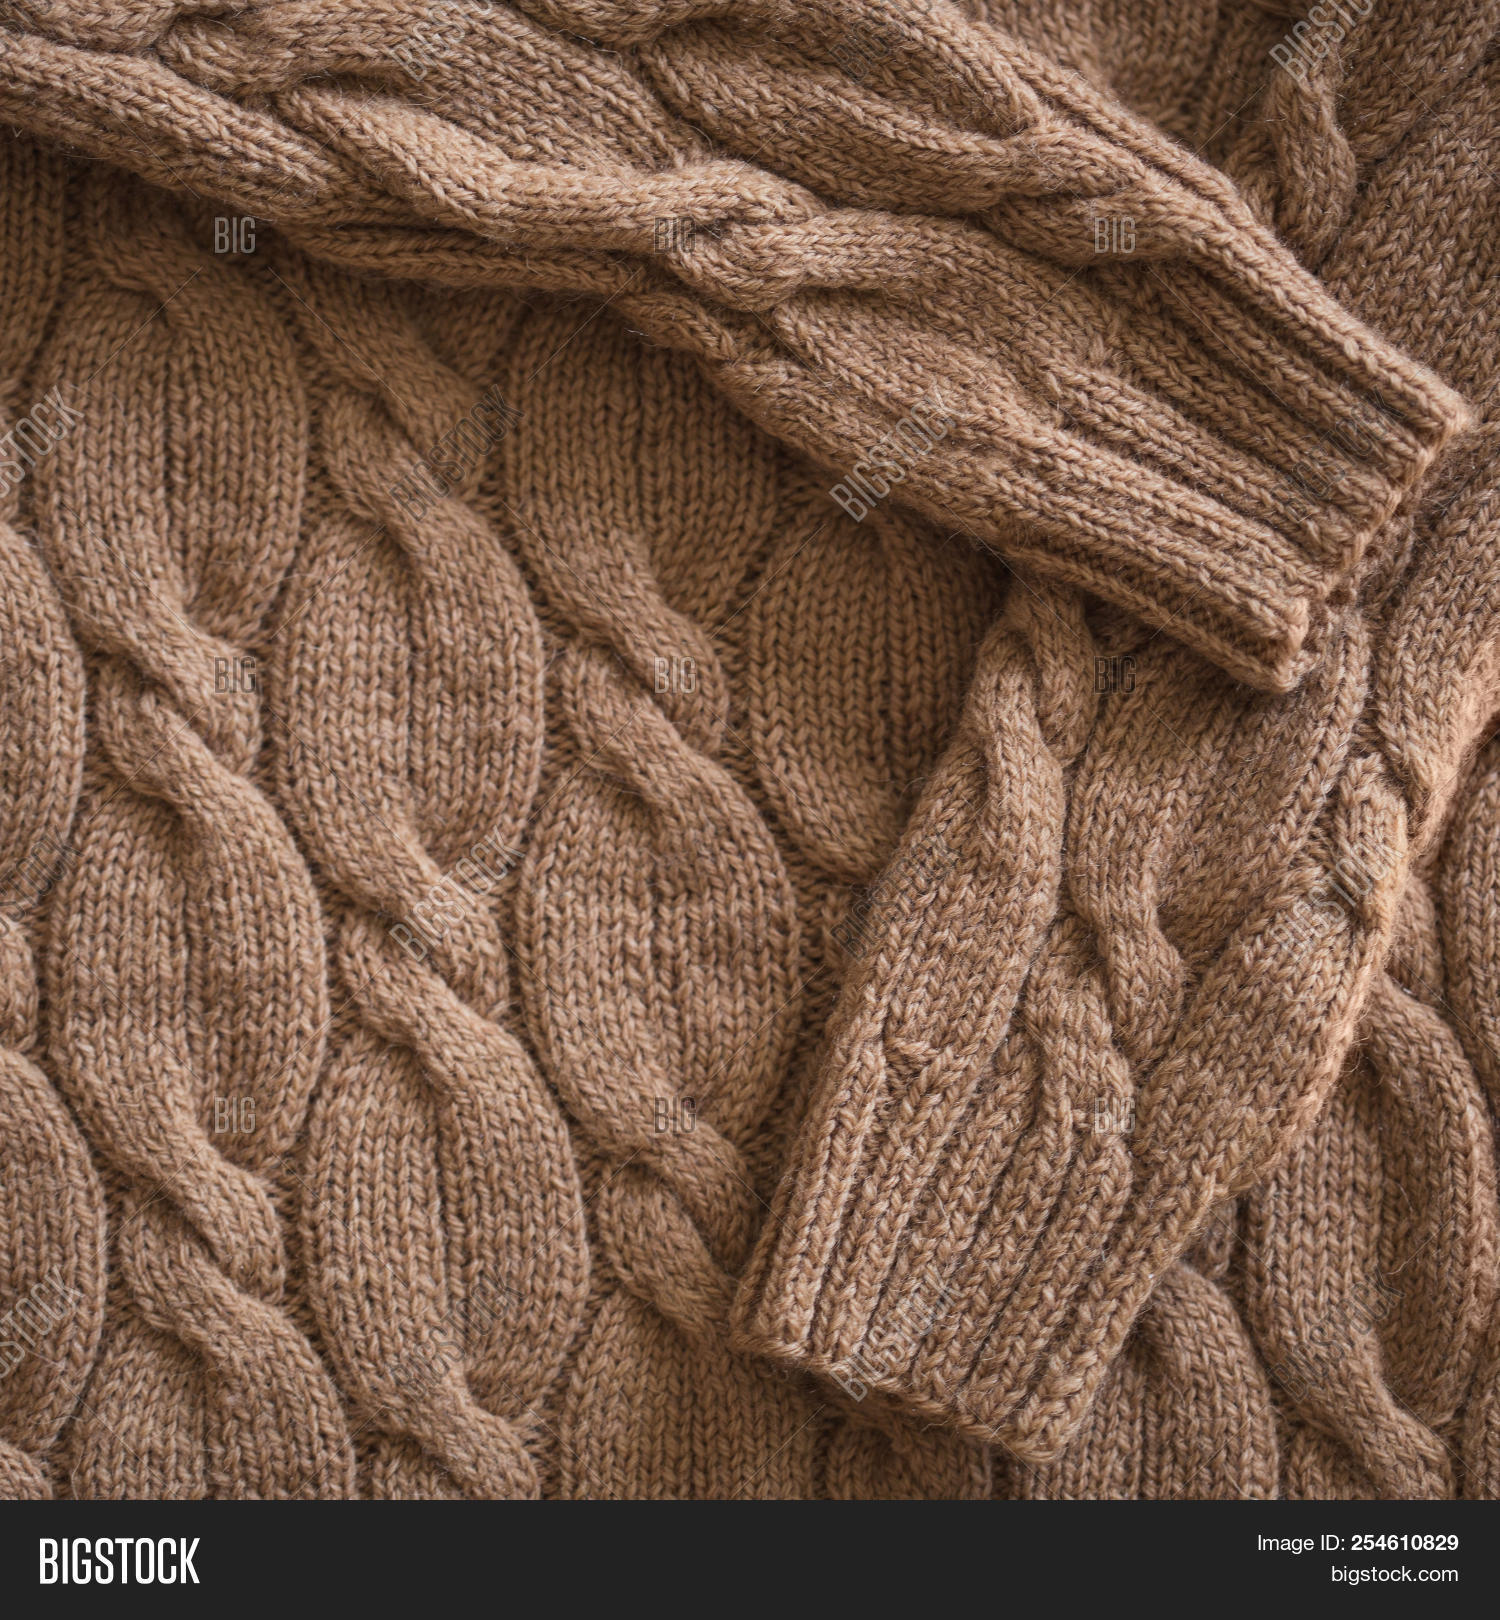 e51419d012c3 Knitted Wool Background. Sweater Closeup. Autumn-winter Concept